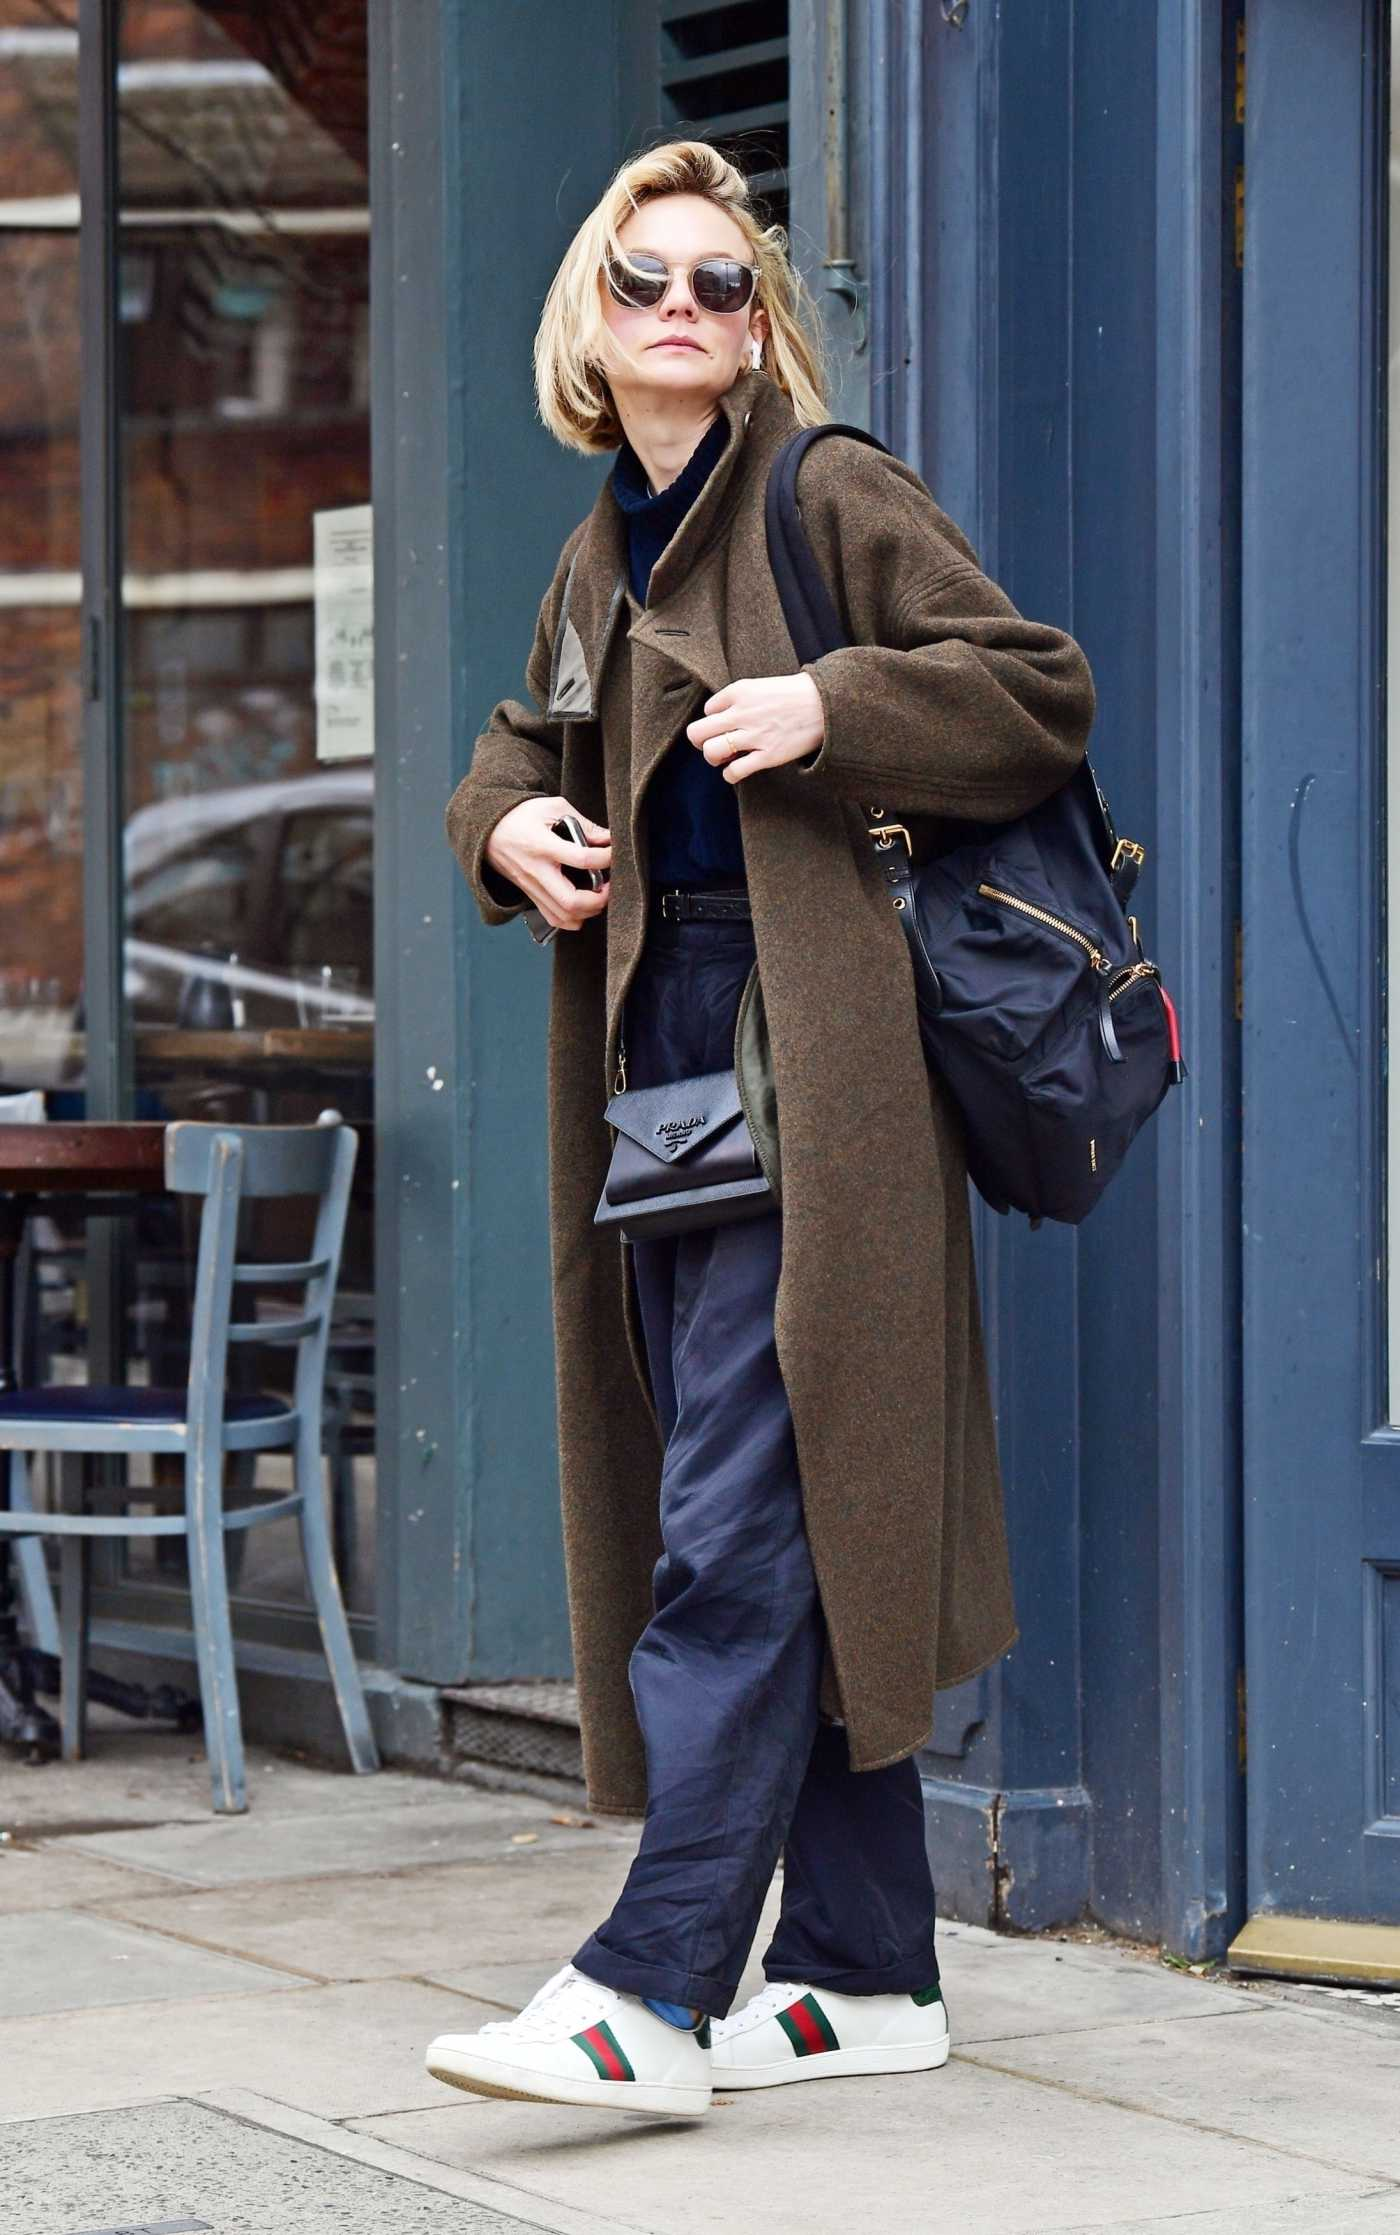 Carey Mulligan in a White Gucci Sneakers Was Seen Out in Notting Hill, London 03/10/2020